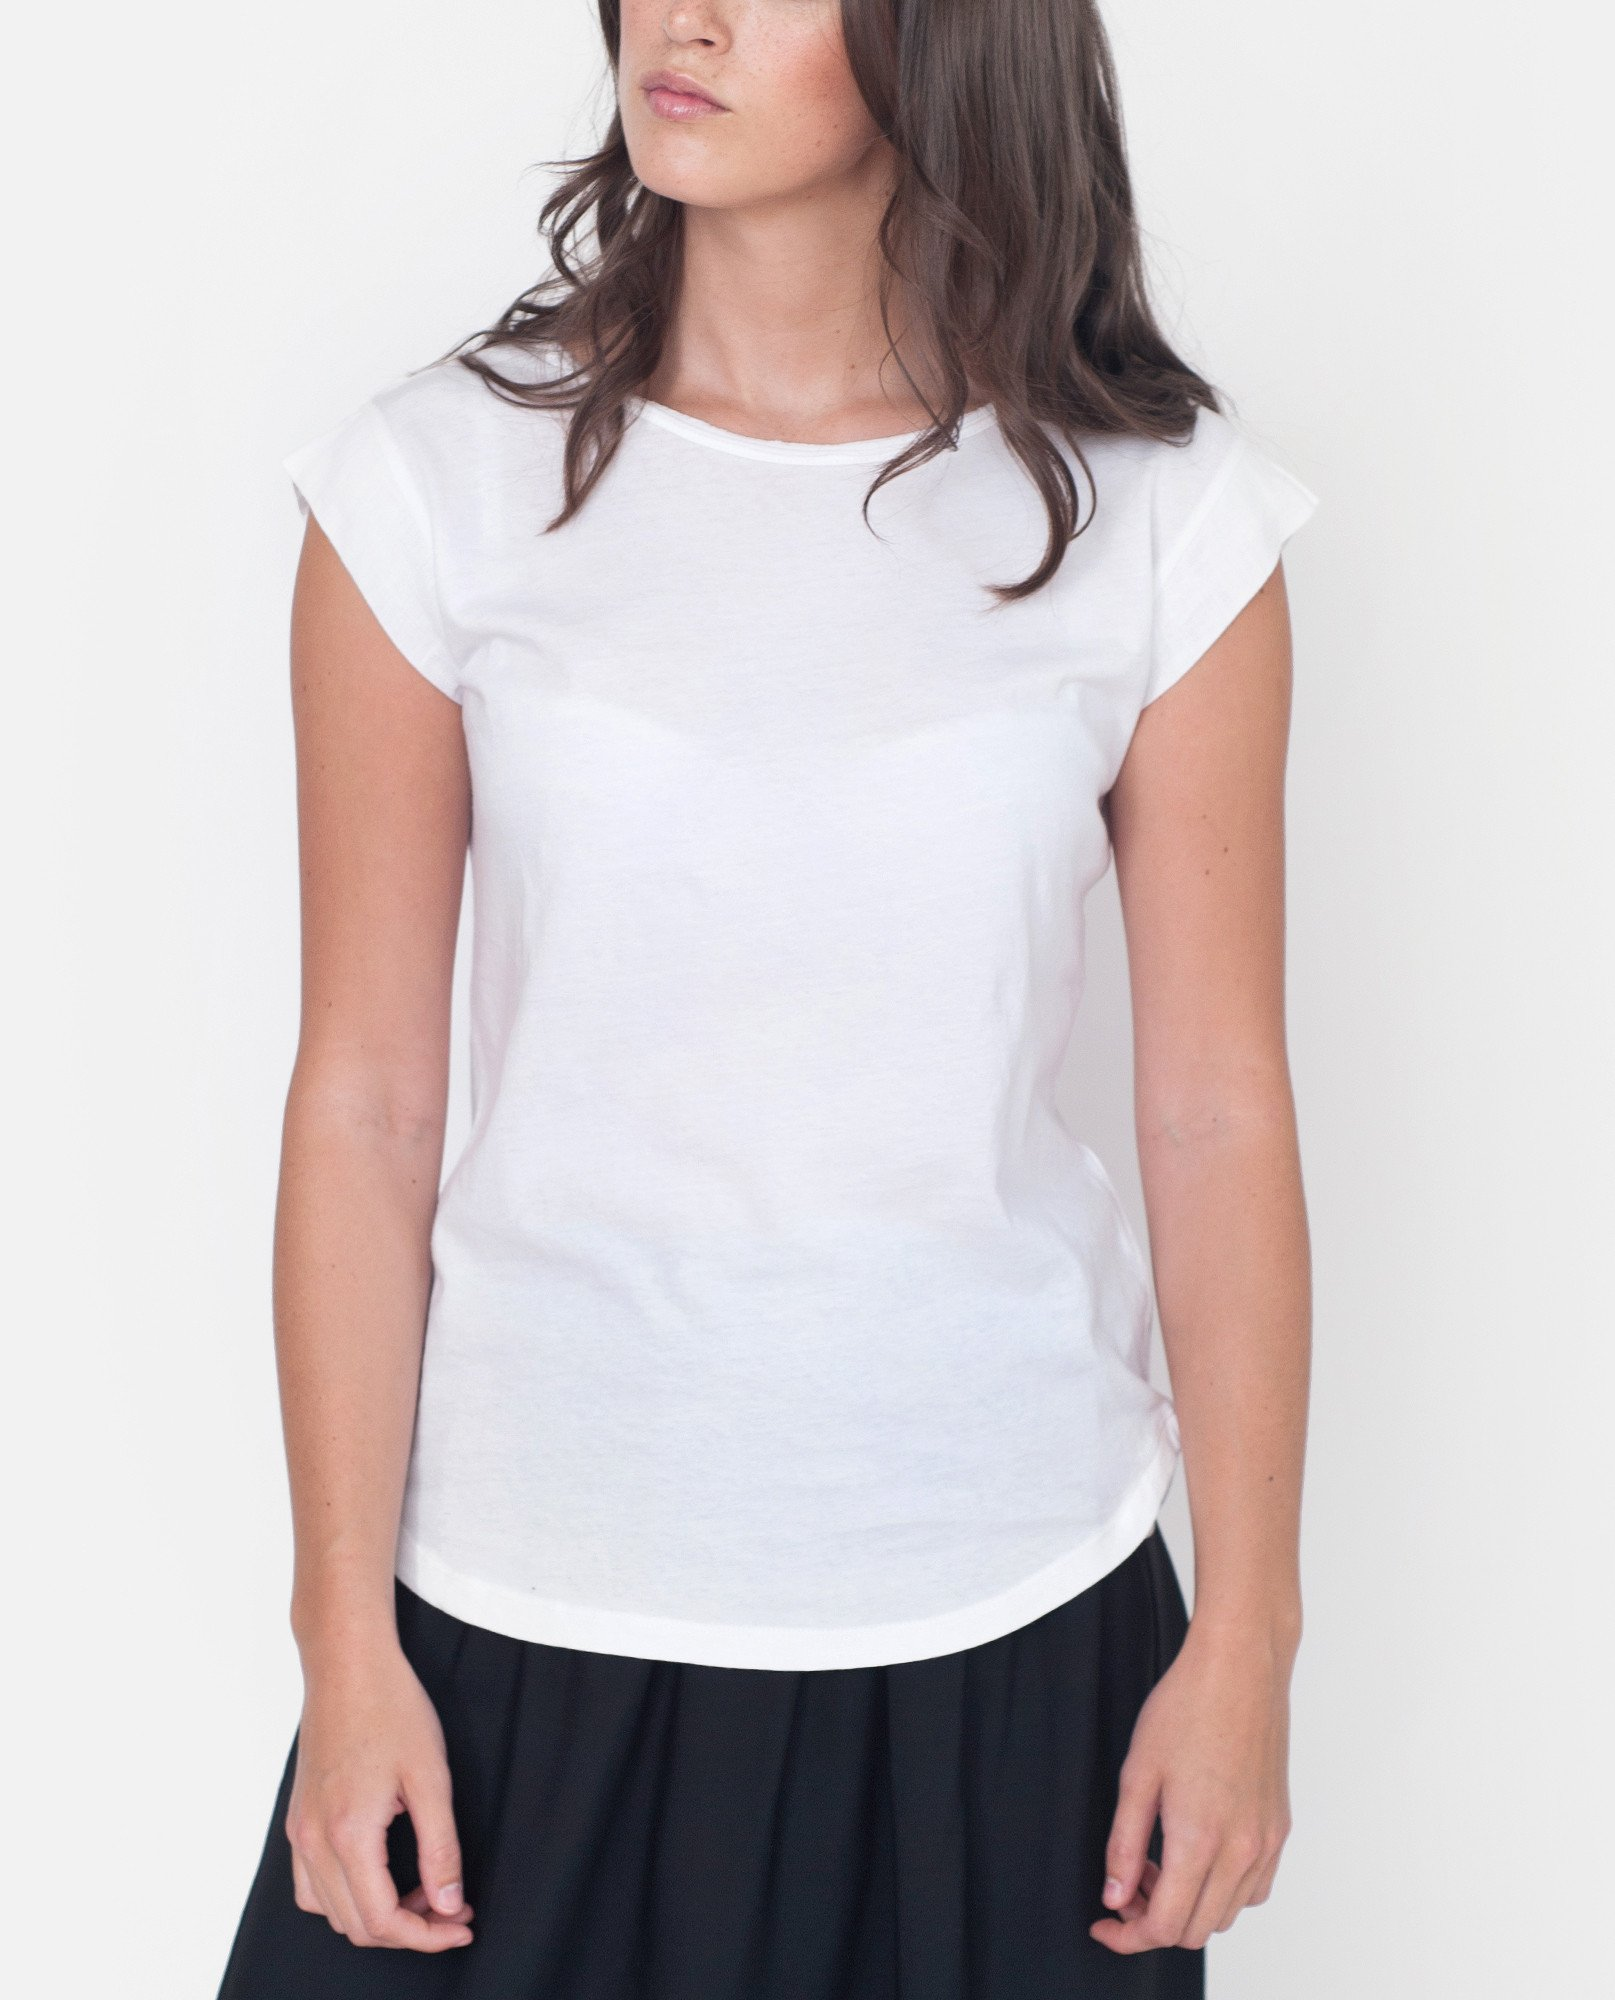 DORIS Organic Cotton And Linen Top In White from Beaumont Organic